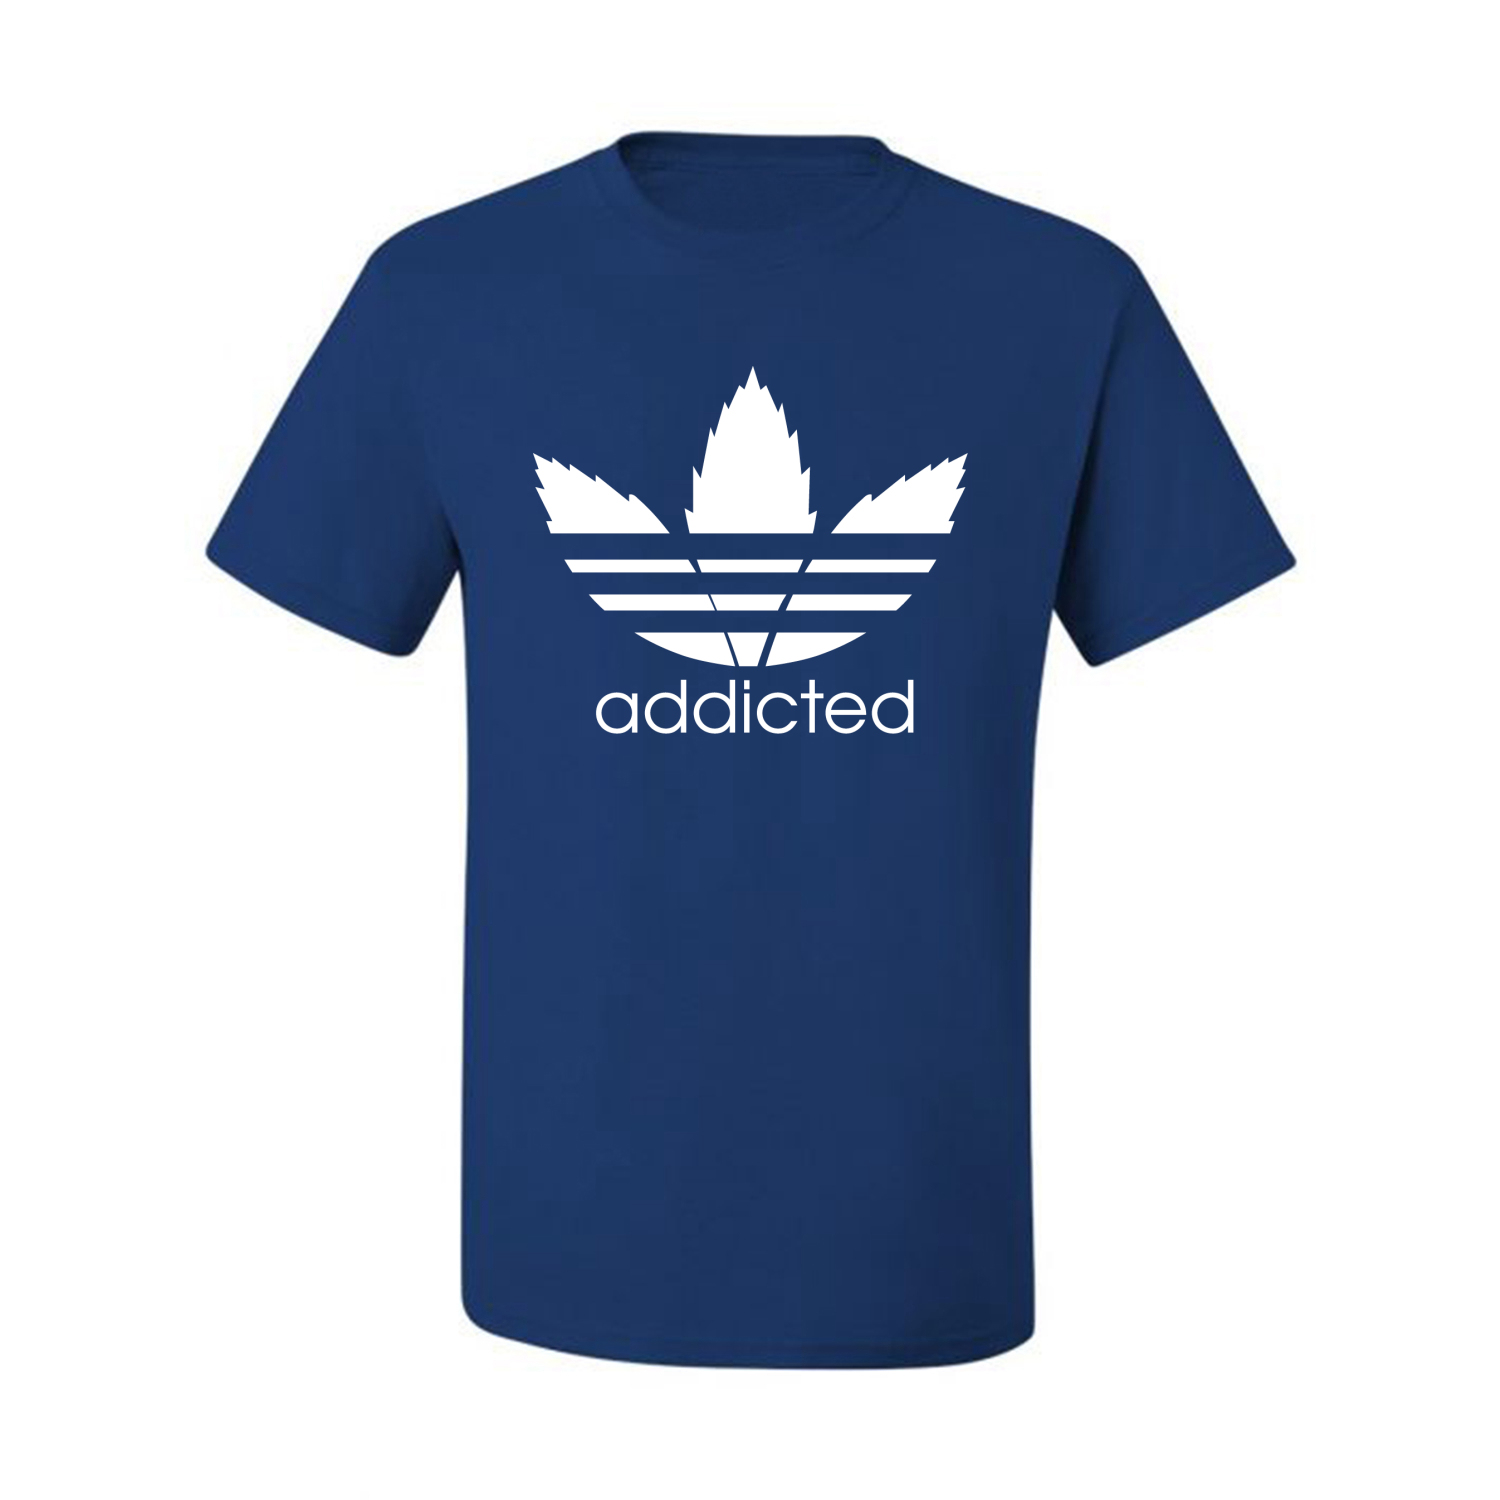 Addicted-White-Pot-Leaf-Mens-Weed-T-Shirt-Graphic-Parody-Tee thumbnail 36